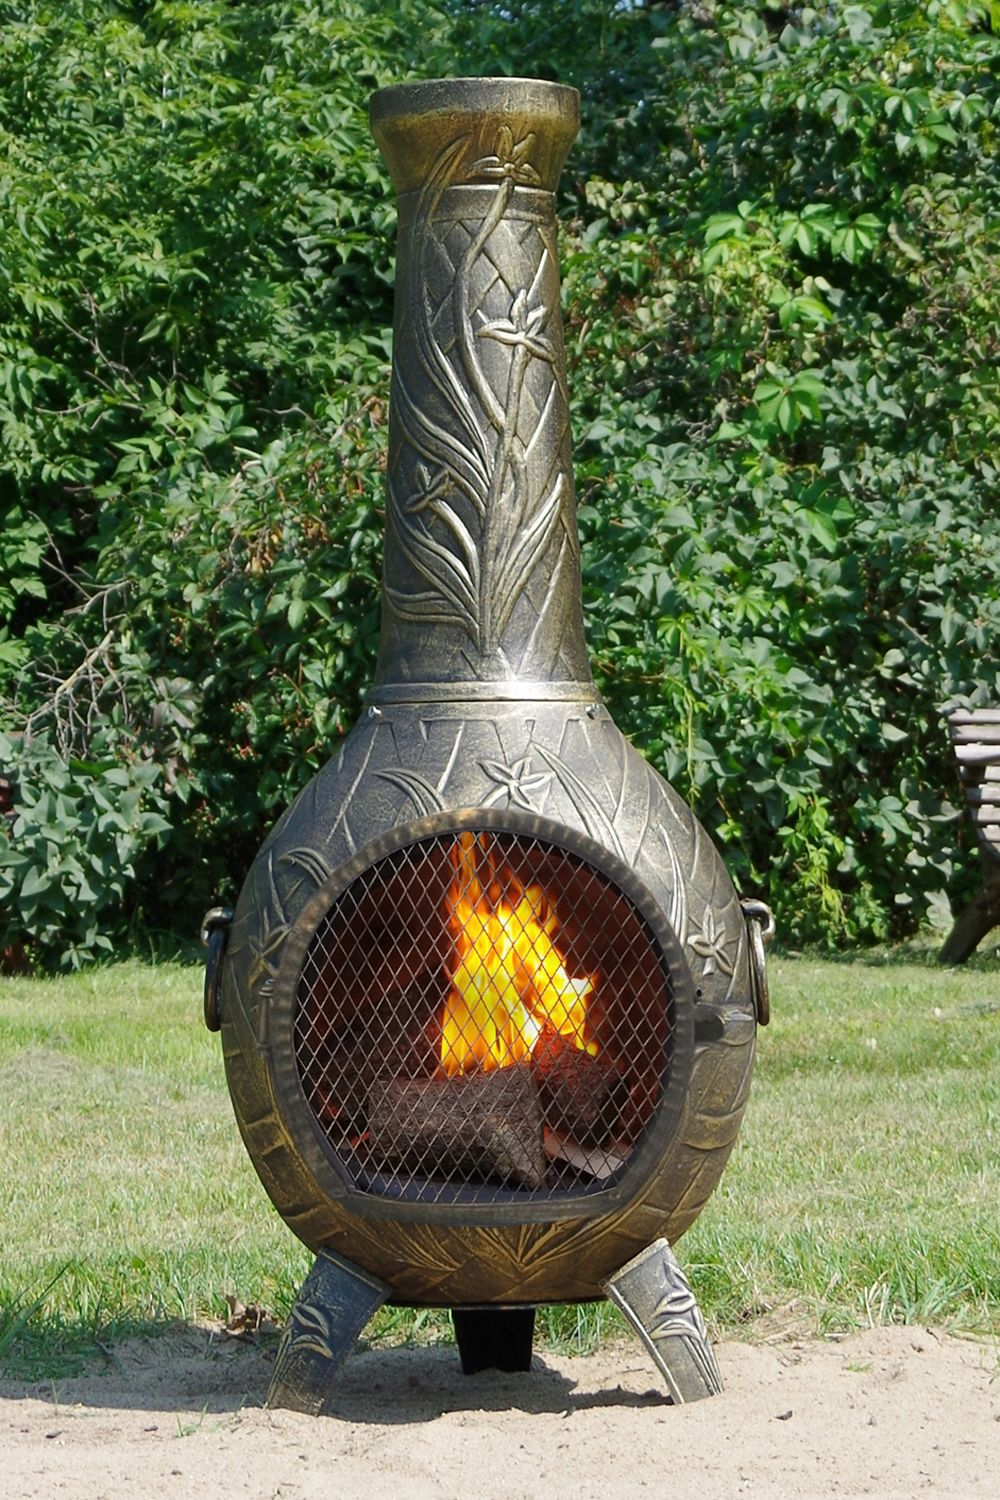 Orchid Chiminea Outdoor Fireplace Designs Outdoor Fireplace Fireplace Design